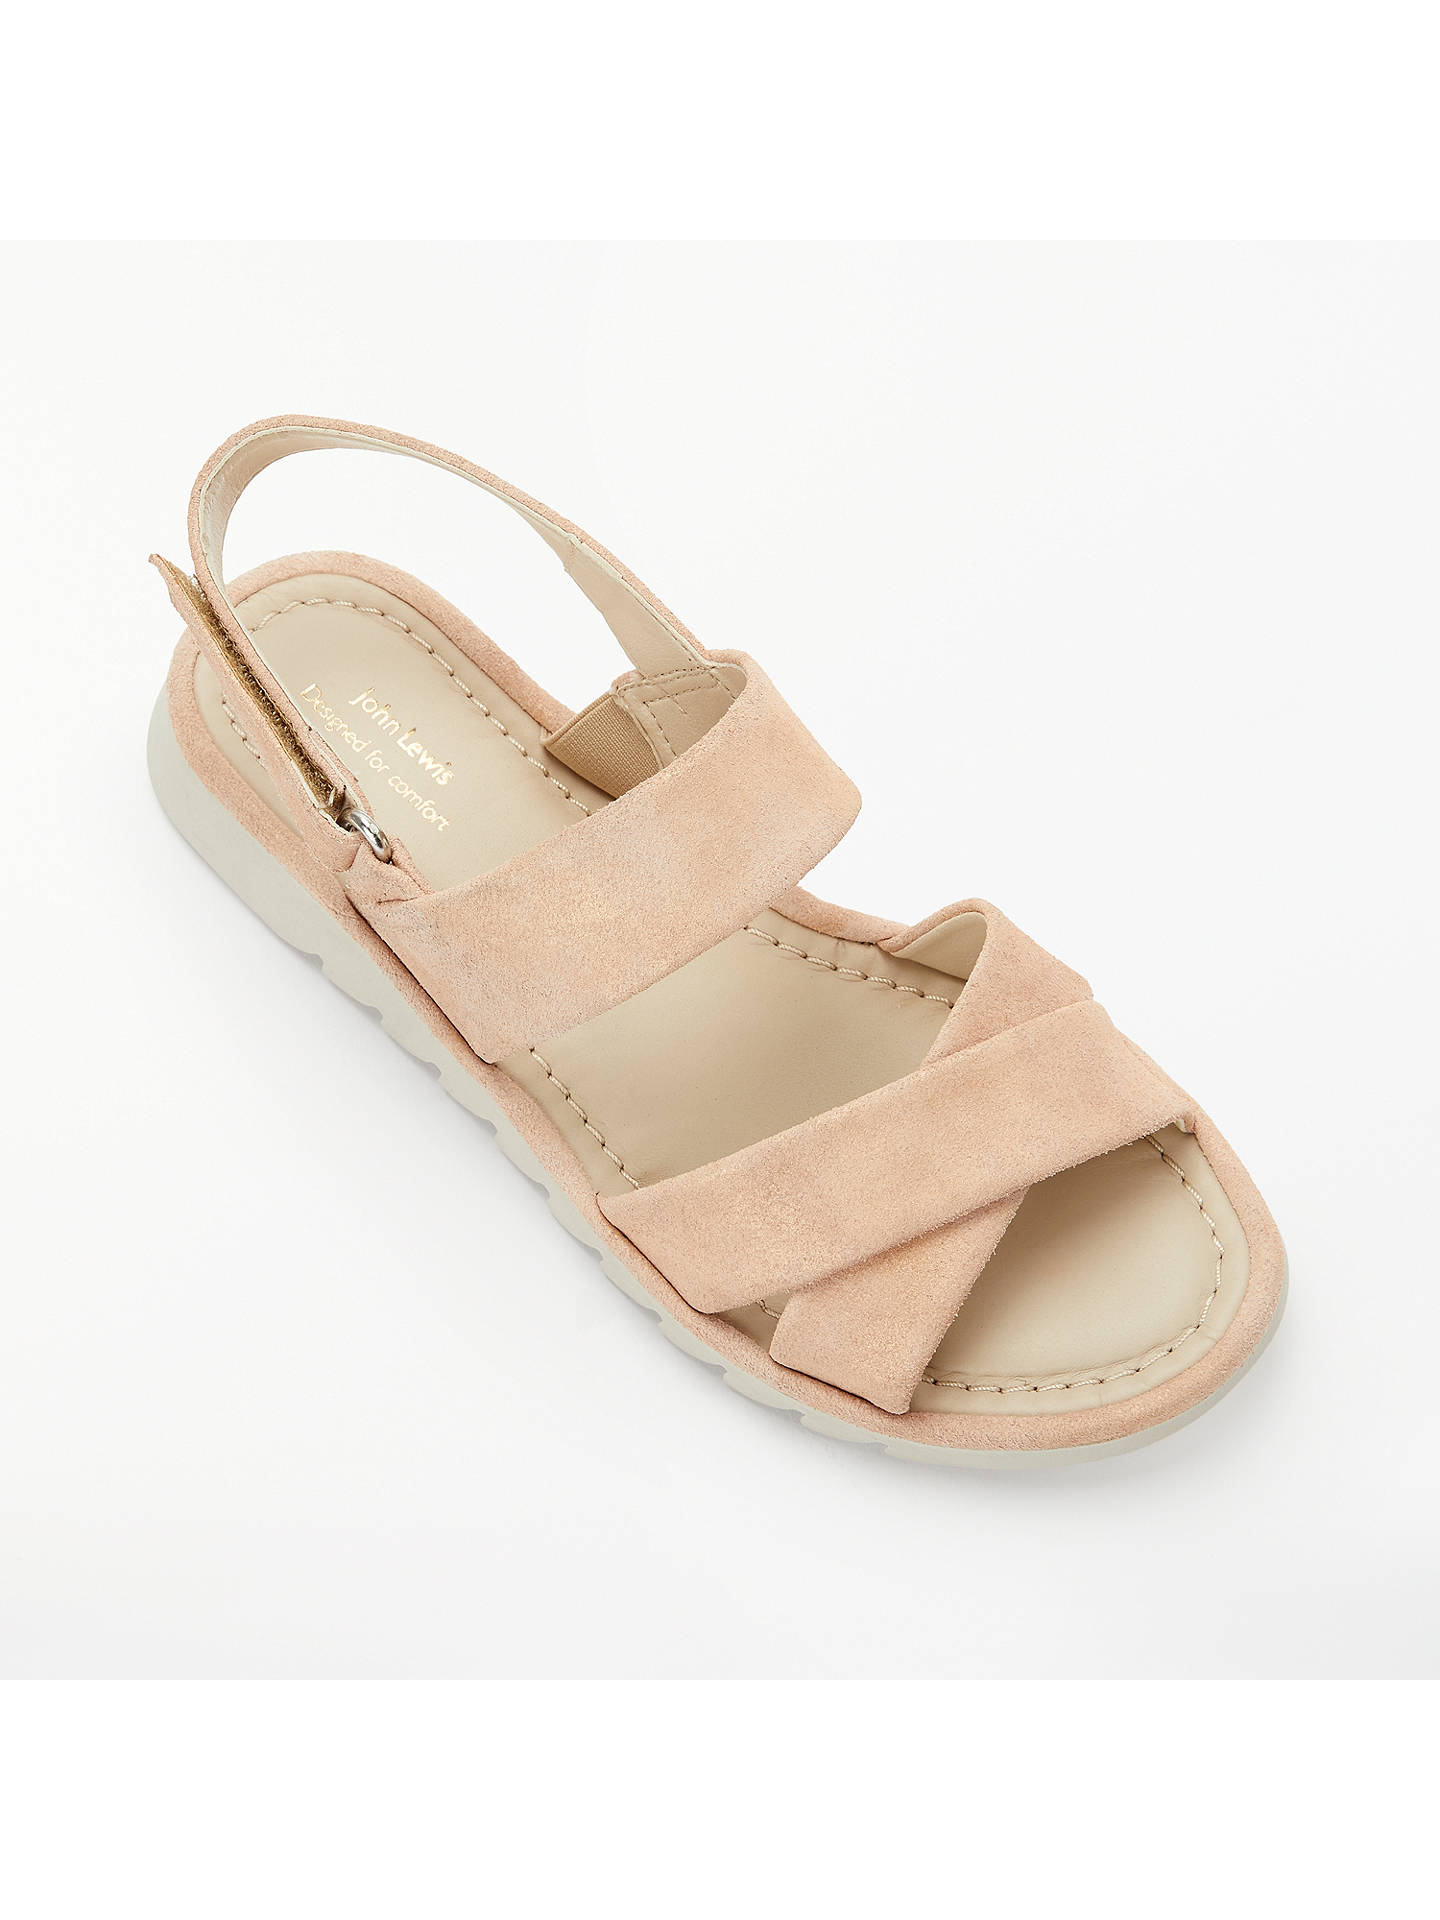 Buy John Lewis & Partners Designed for Comfort Lucy Cross Strap Sandals, Pink, 7 Online at johnlewis.com